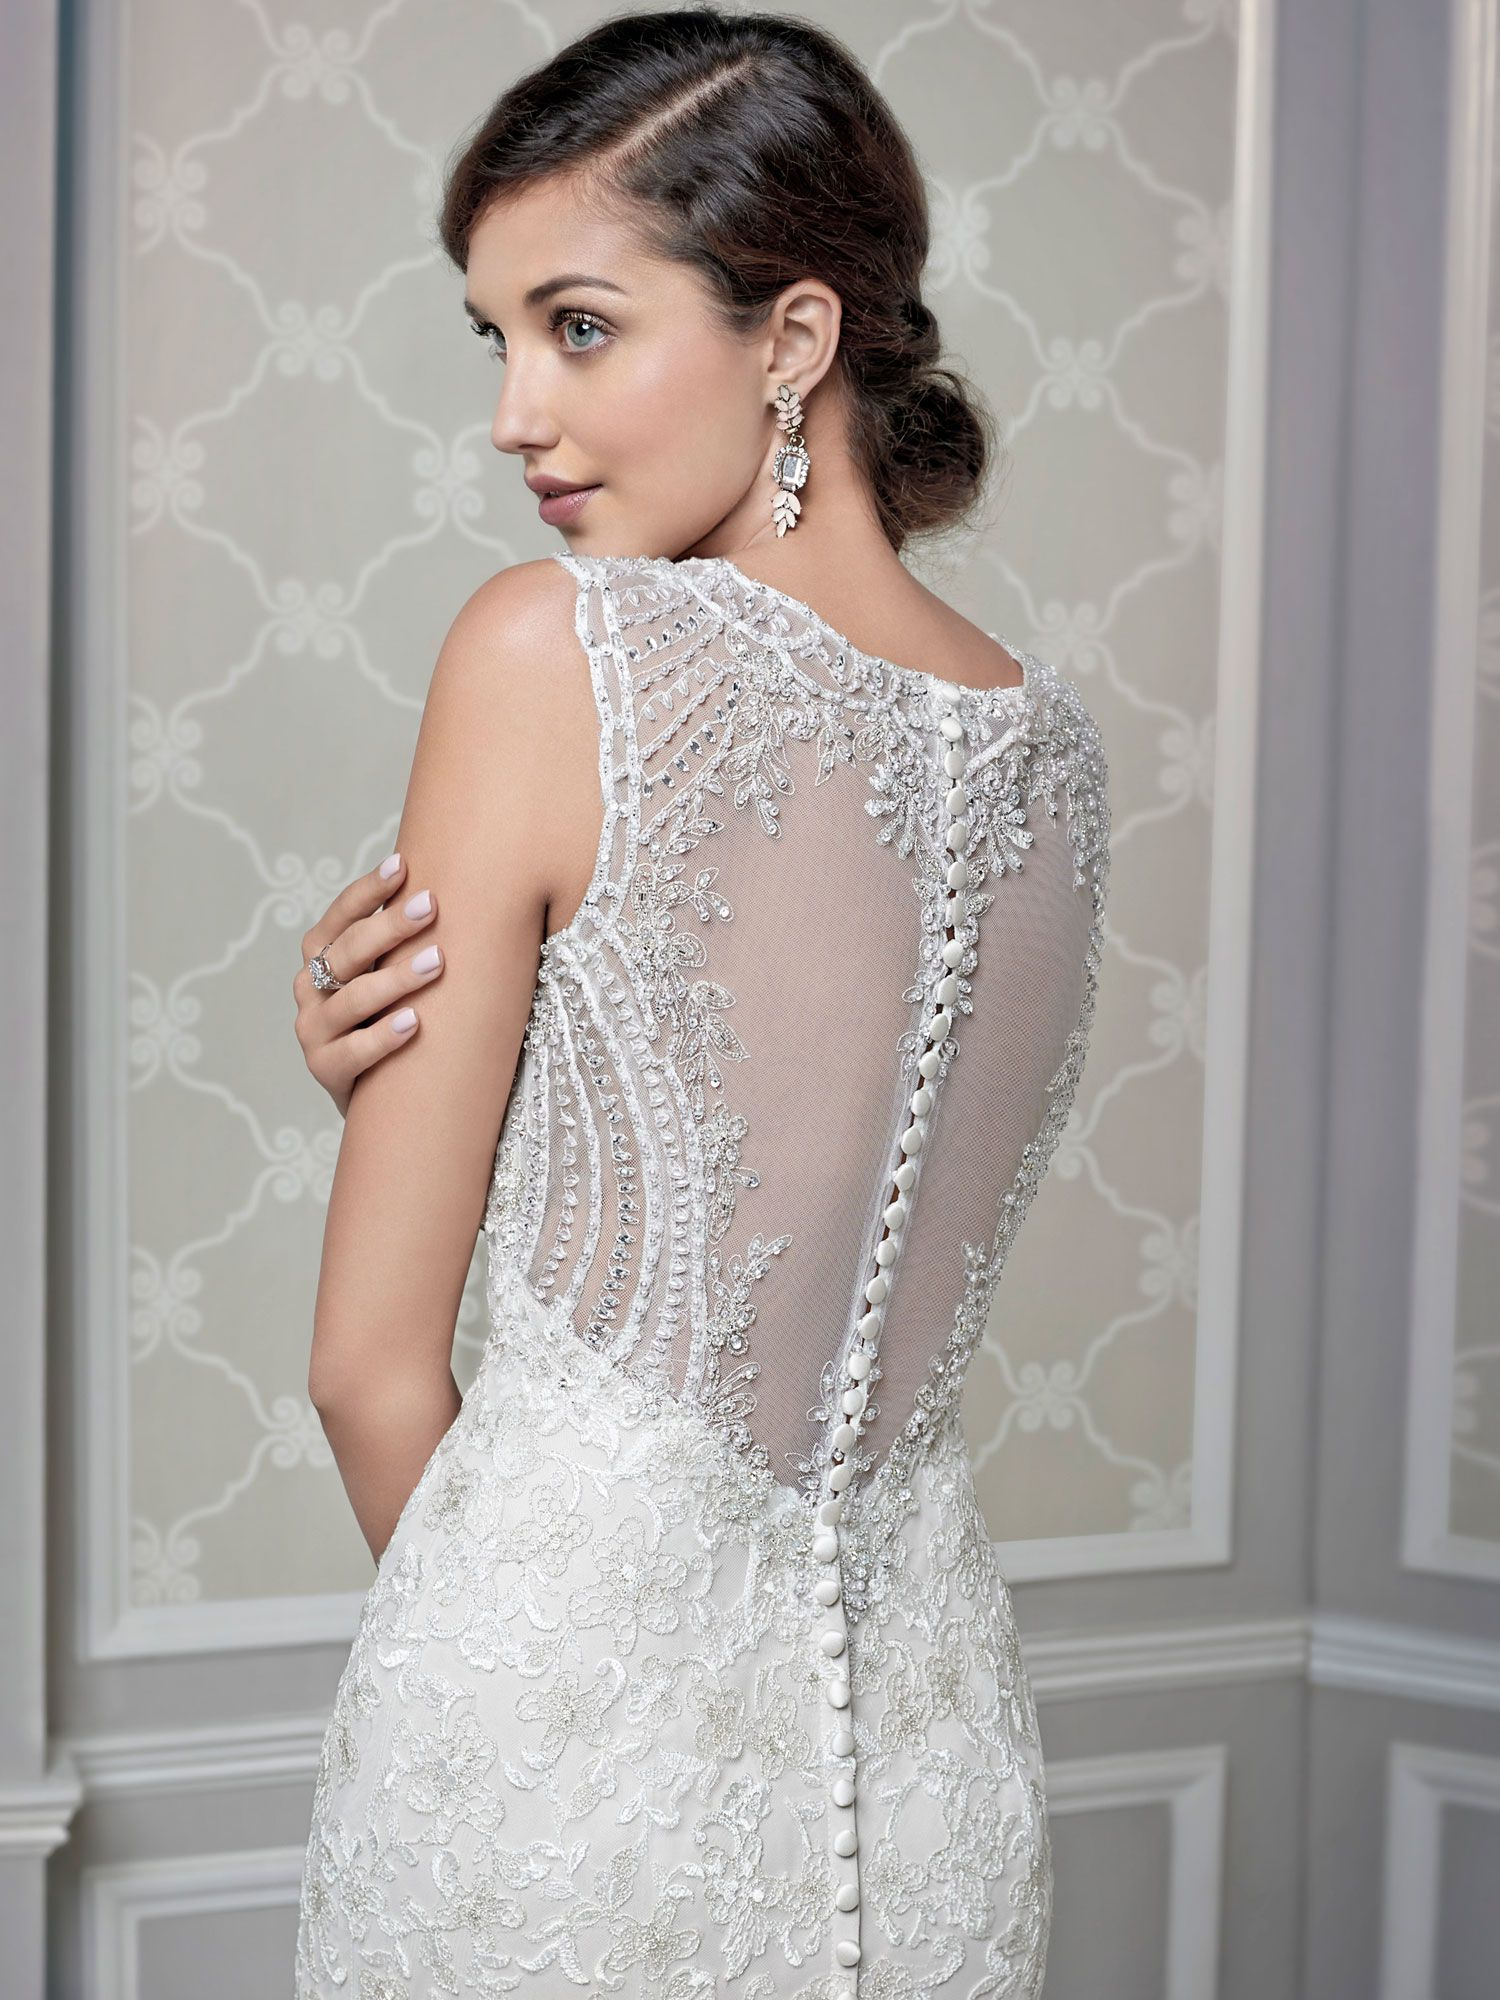 Kenneth winston 1593 an intricate back composed of timeless kenneth winston wedding dress 1593 intricate back piece inspired by timeless mosaic details of beadwork and soft floral embroidery ombrellifo Gallery